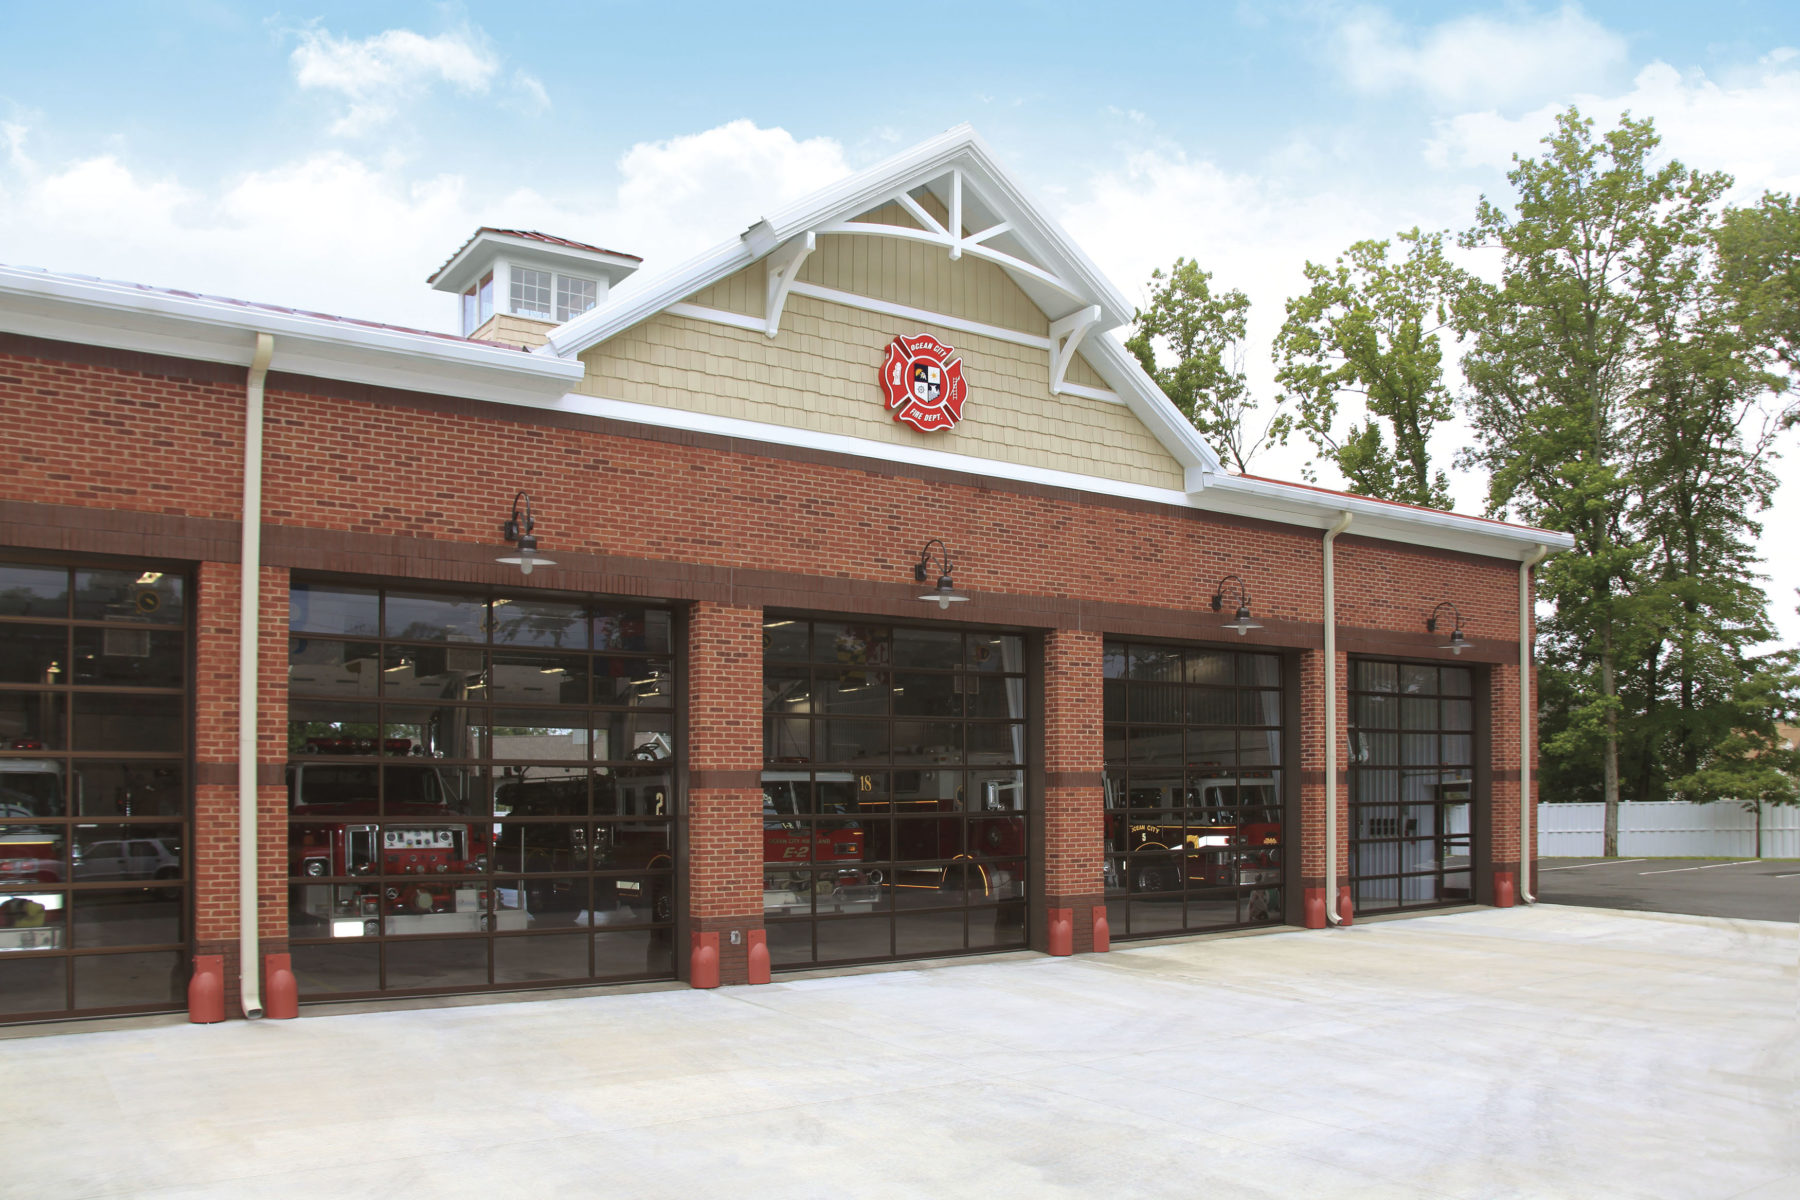 Clopay Commercial Garage Doors On A Fire Station